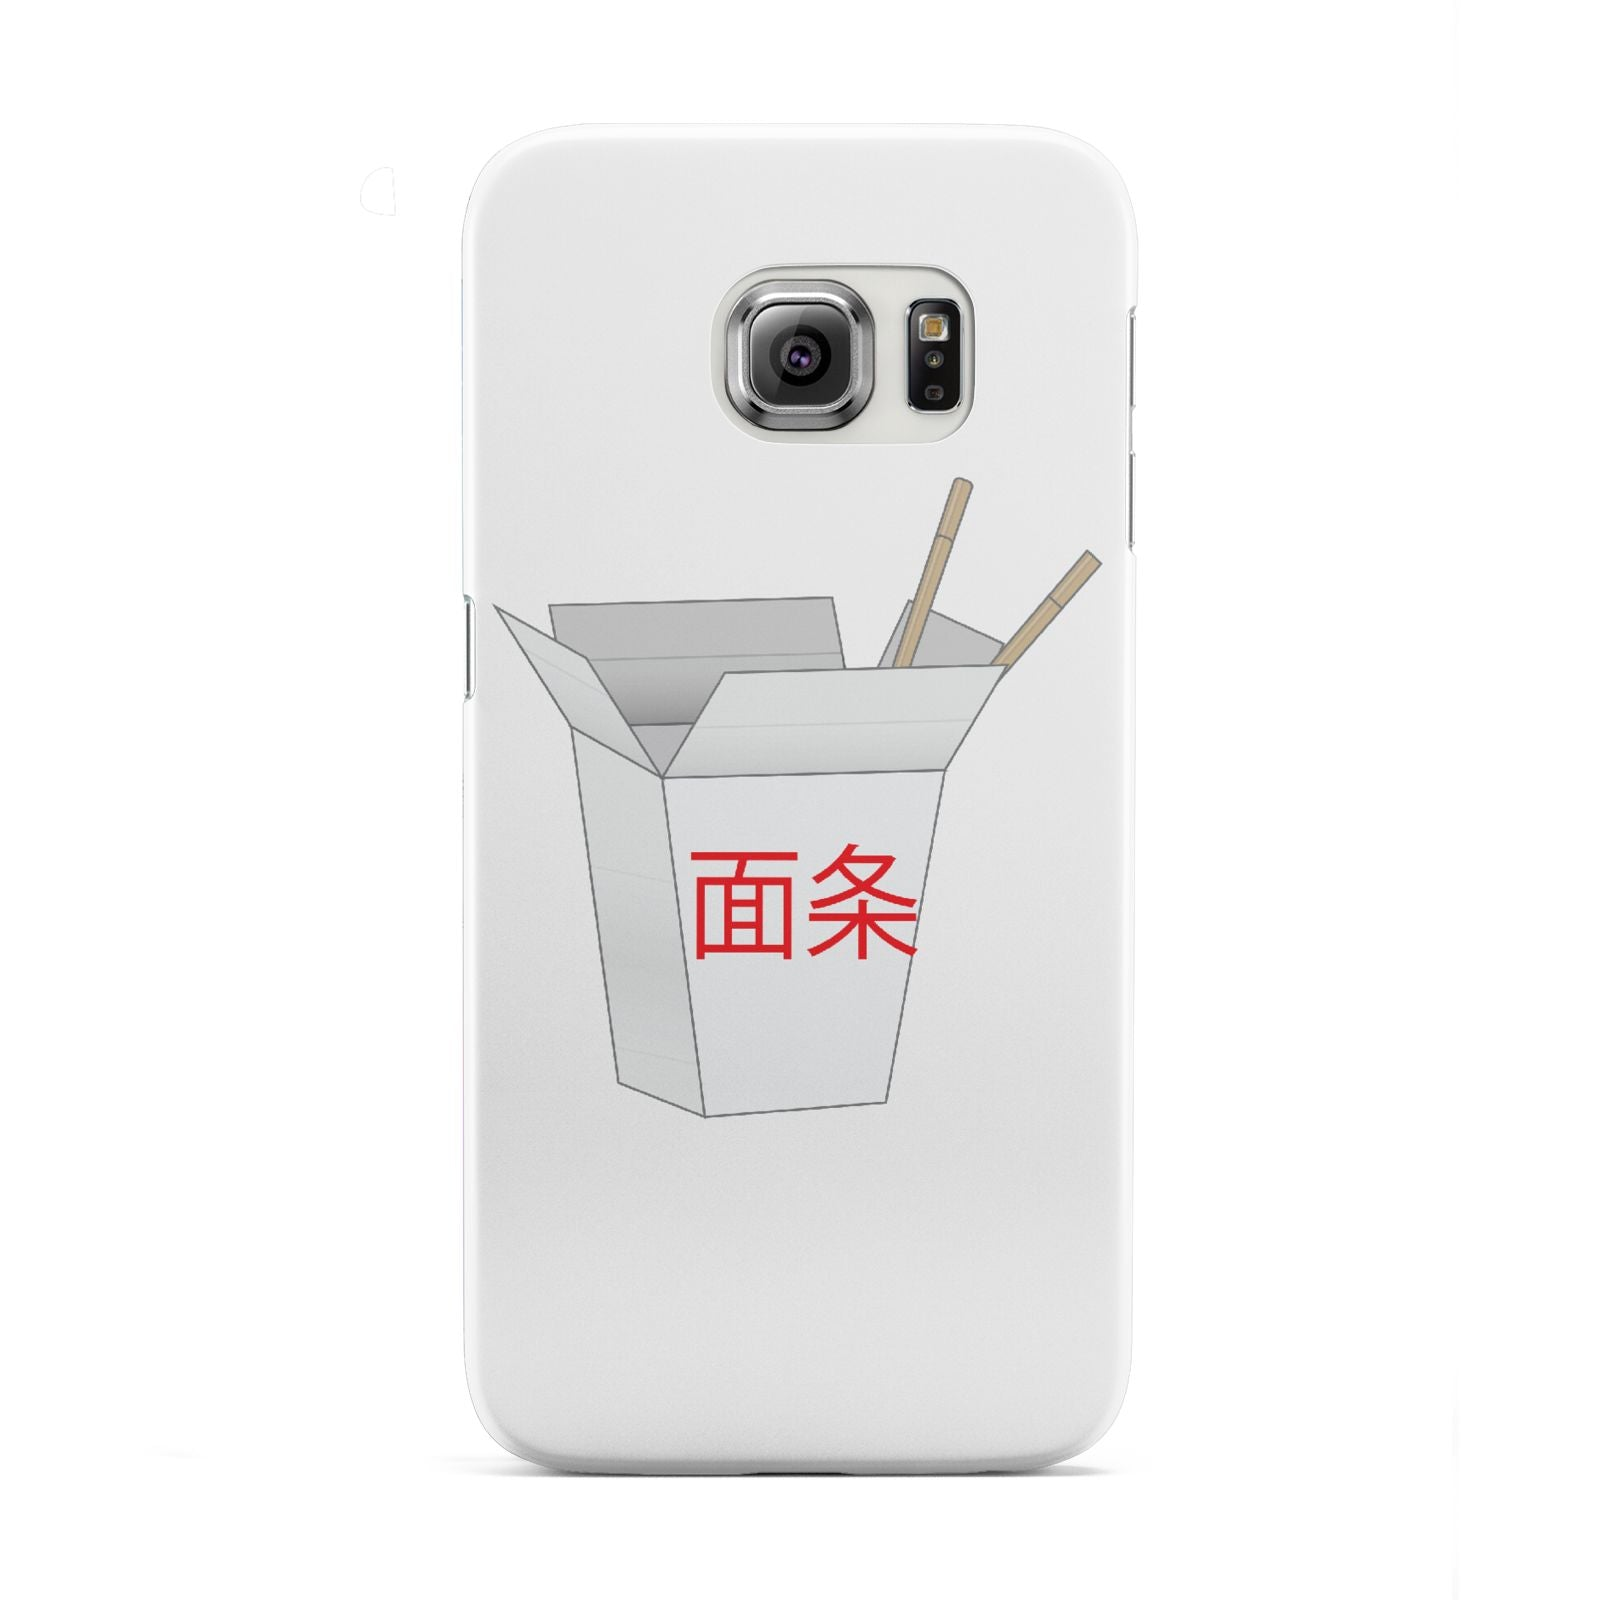 Chinese Takeaway Box Samsung Galaxy S6 Edge Case